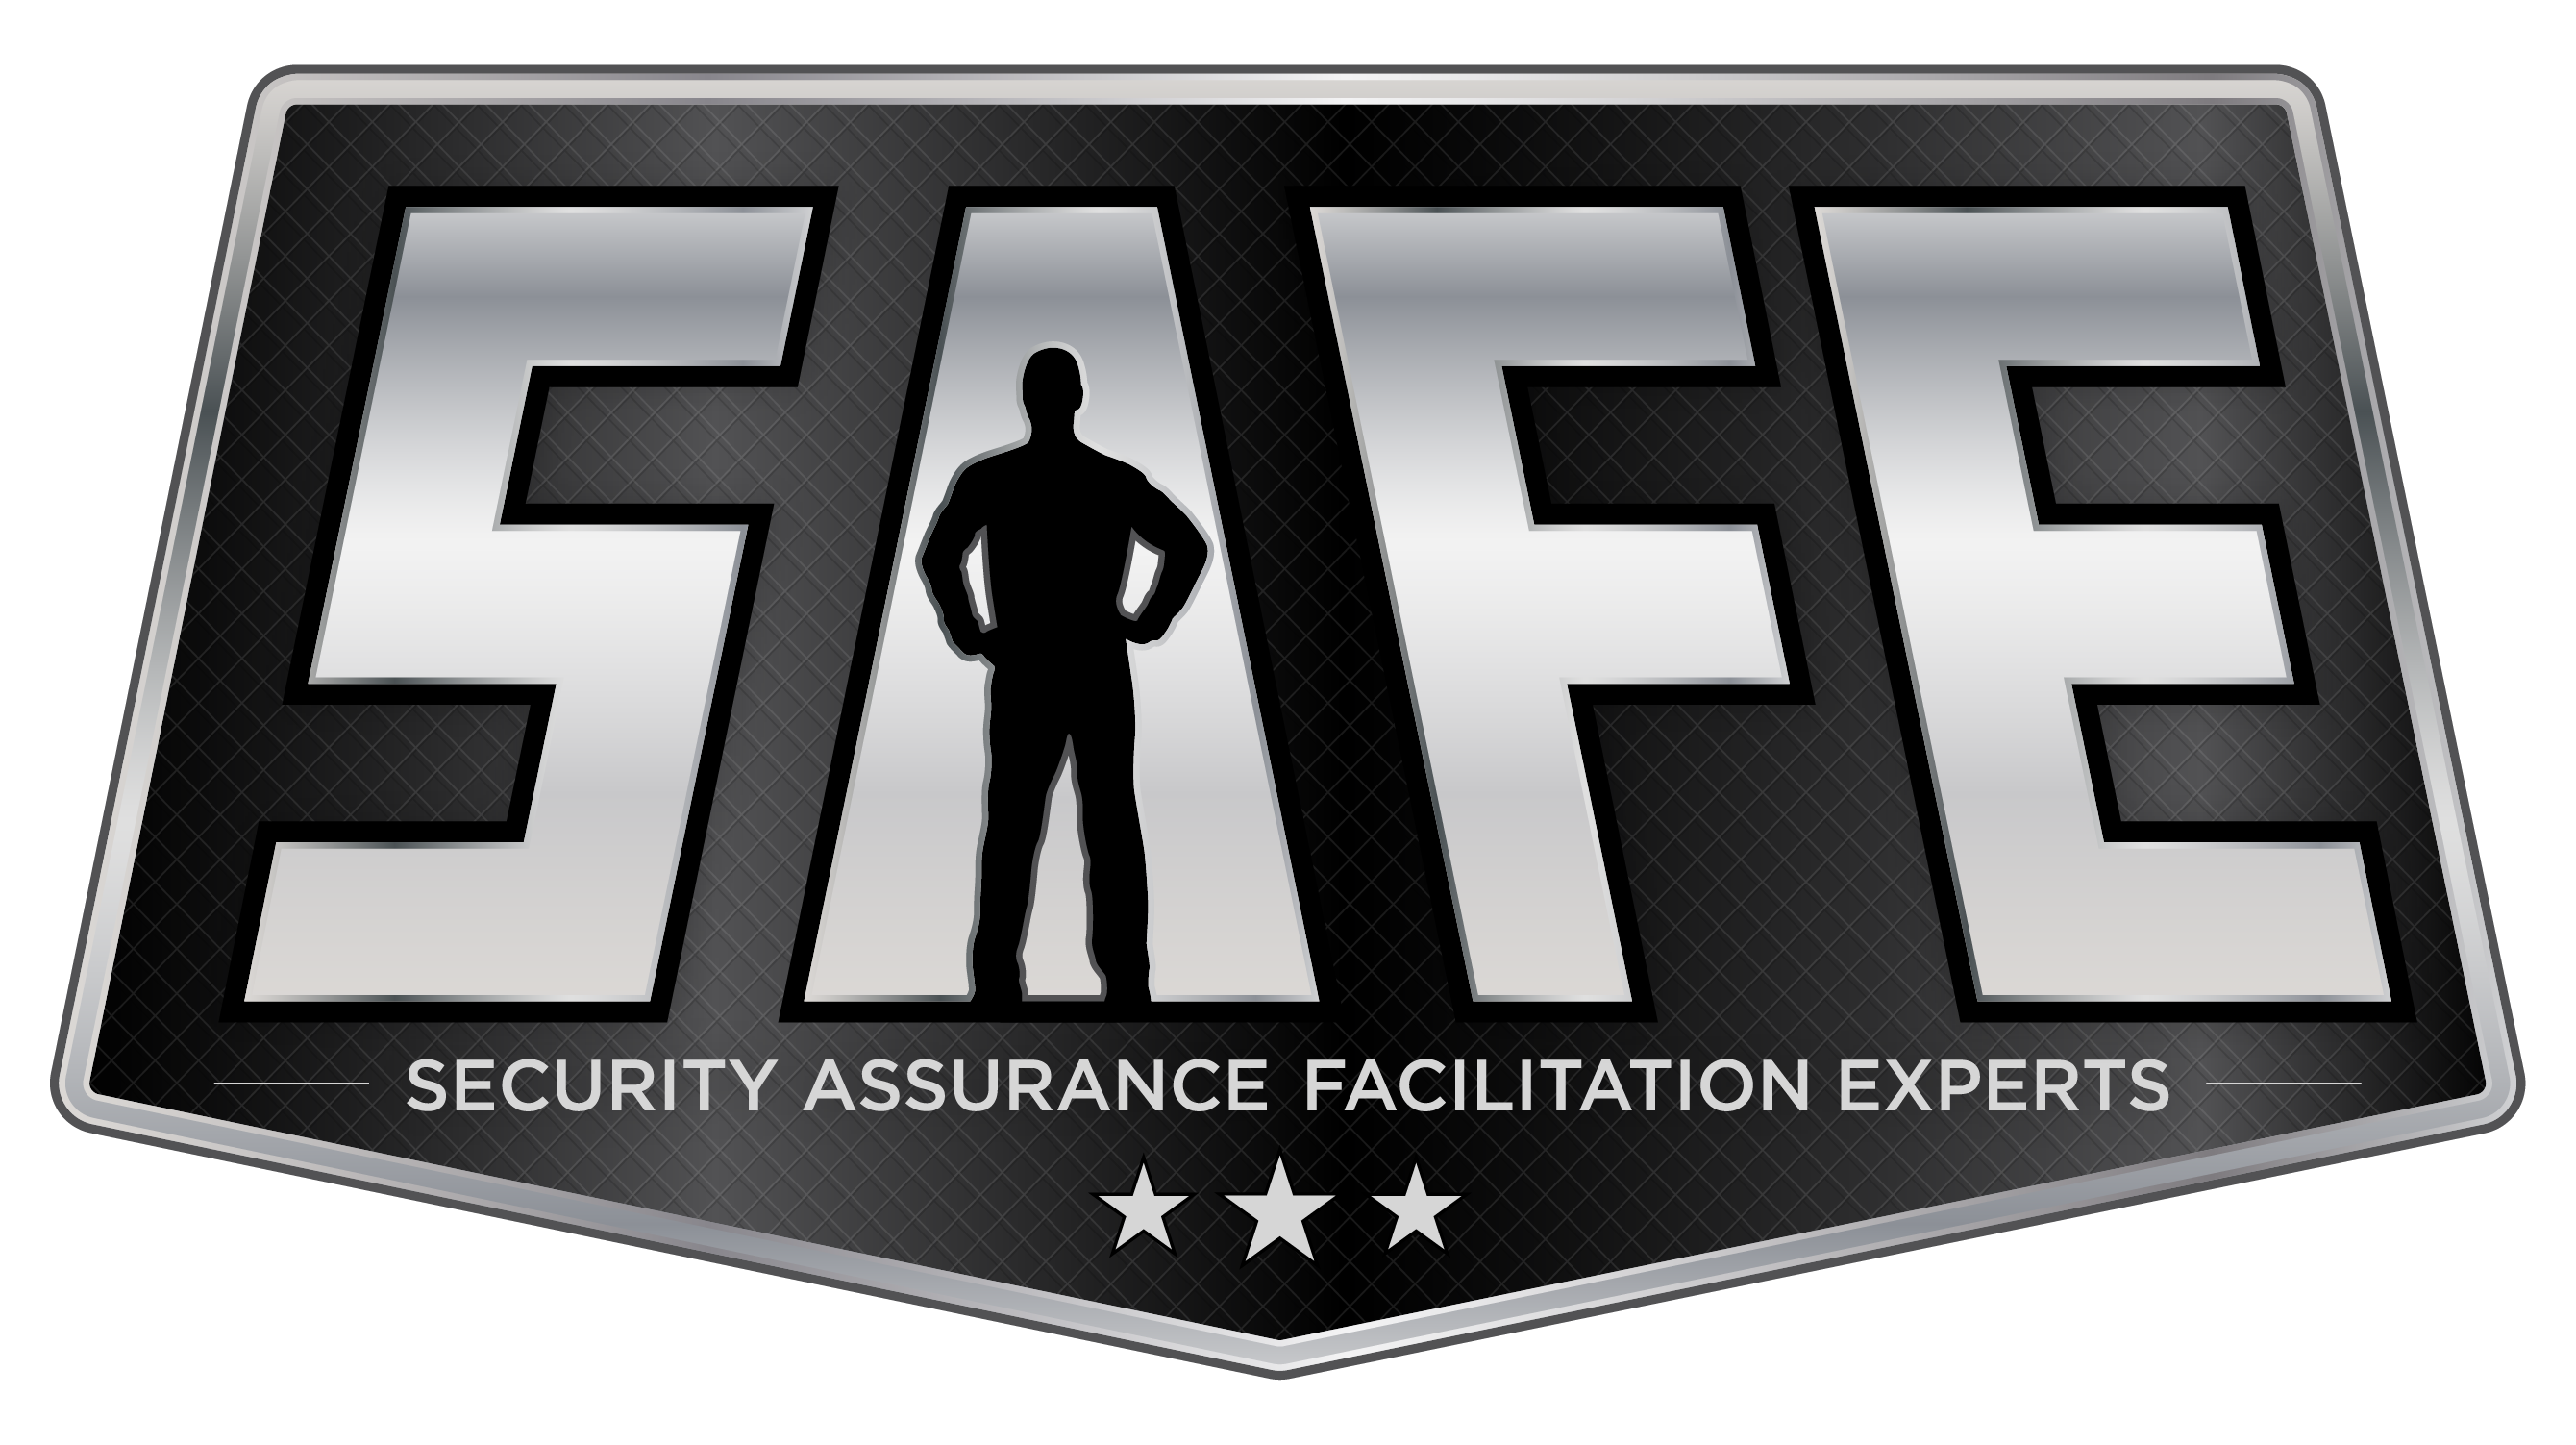 Security Assurance Facilitation Experts